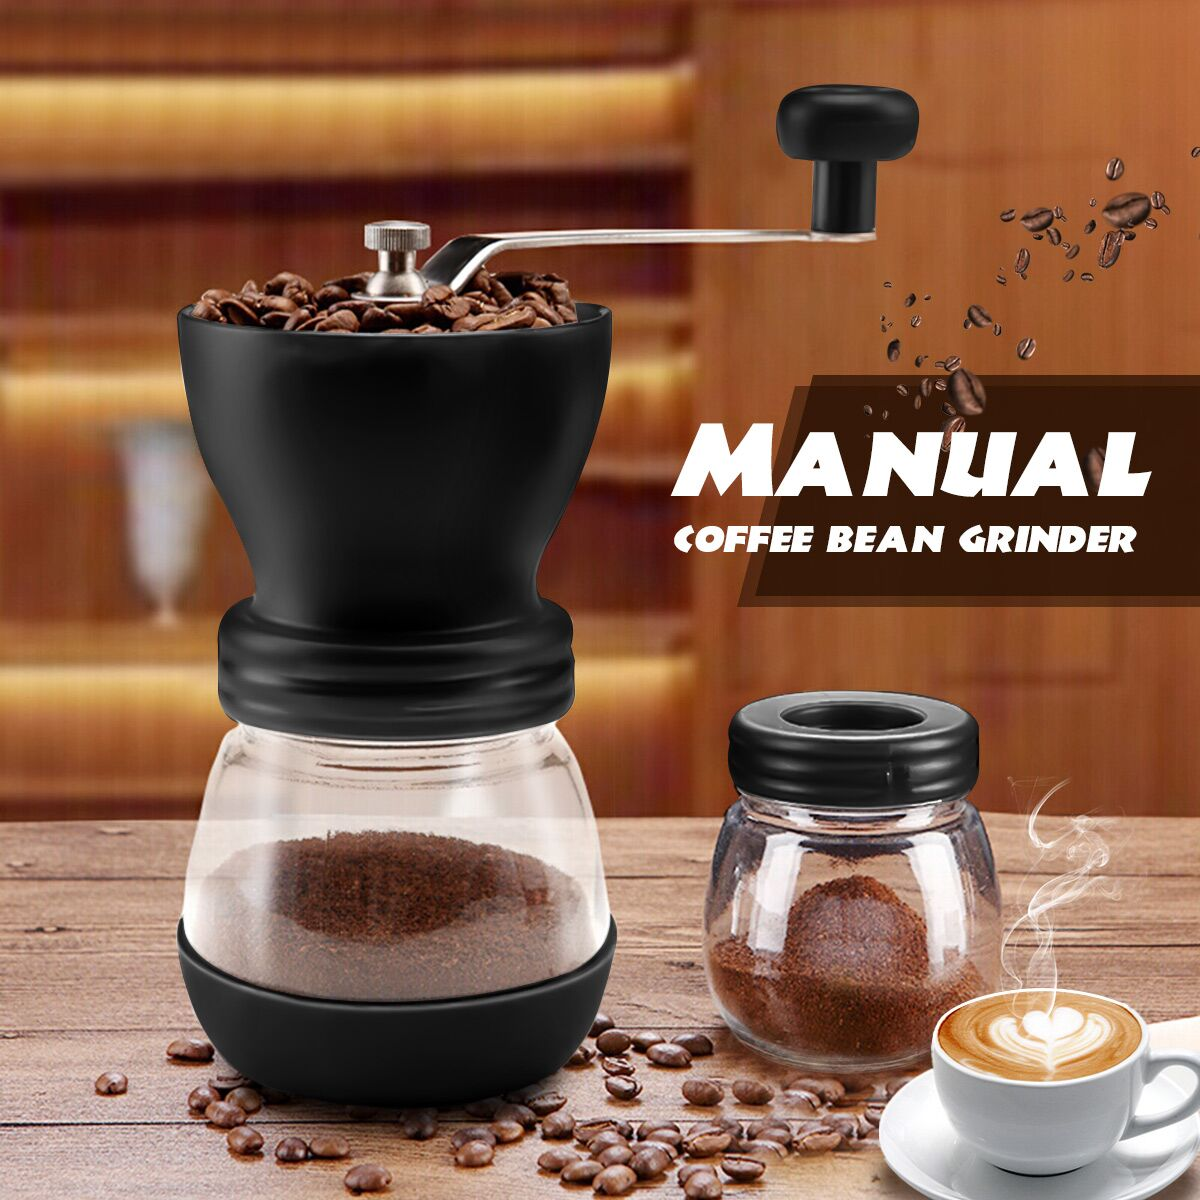 Manual Washable Ceramics Burr Coffee Maker Coffee Bean Grinder Durable Hand Mill With Fortified Glass Storage Jar Kitchen Tools